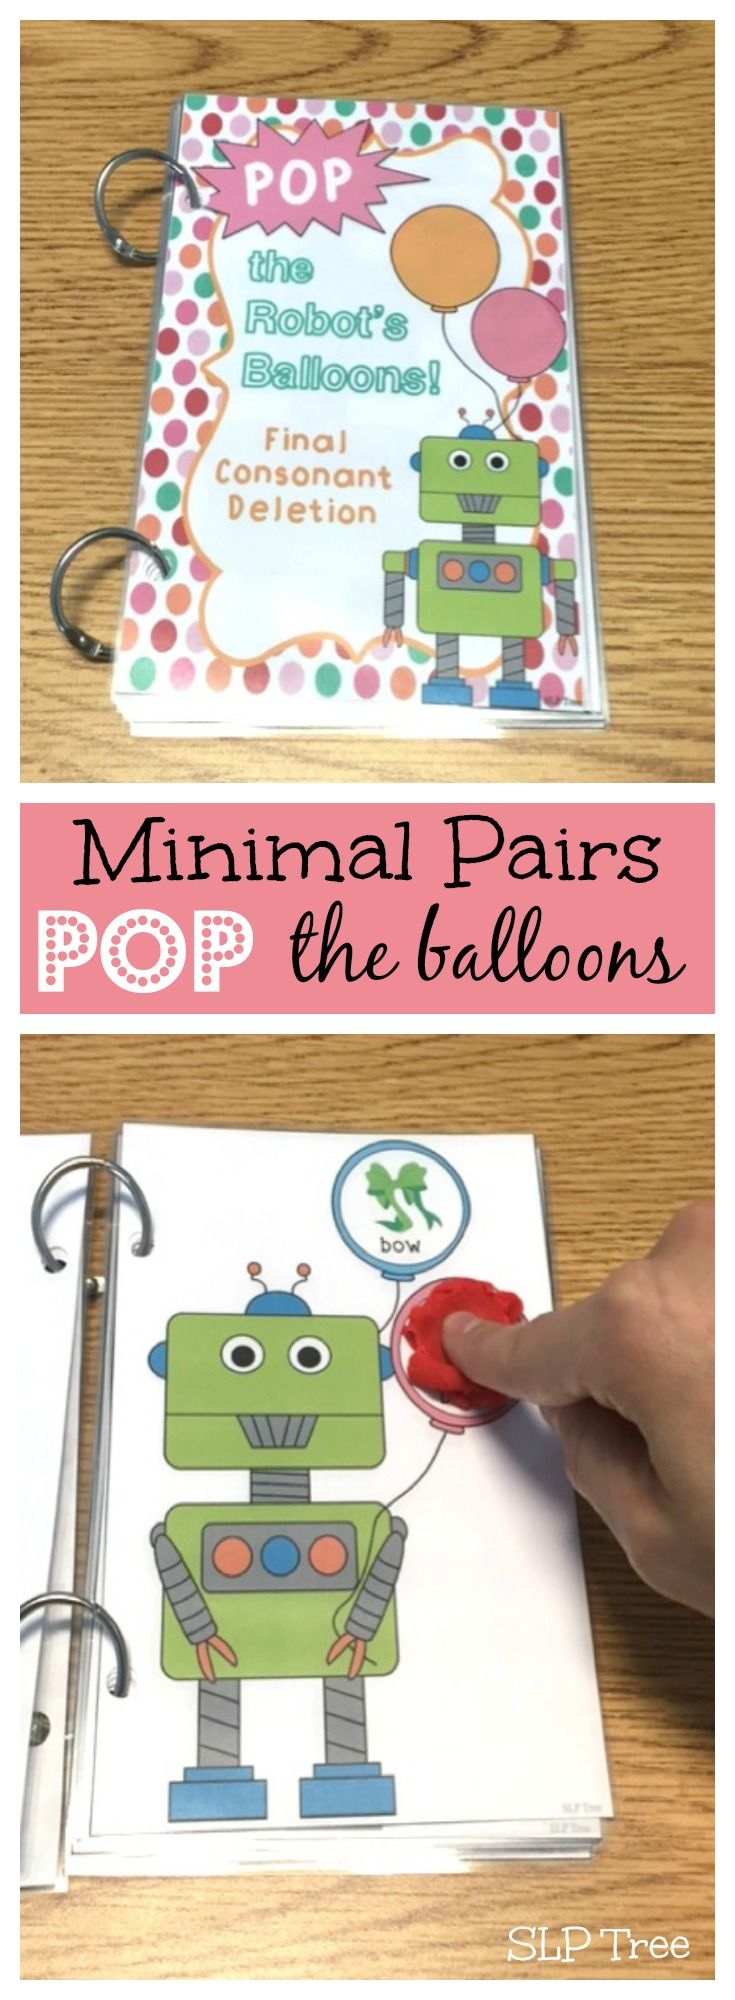 """Five books to work on auditory discrimination and/or reduction of phonological processes by """"popping"""" minimal pairs balloons. Laminate and smash balls of play dough or dot with a dry erase marker for an interactive activity."""